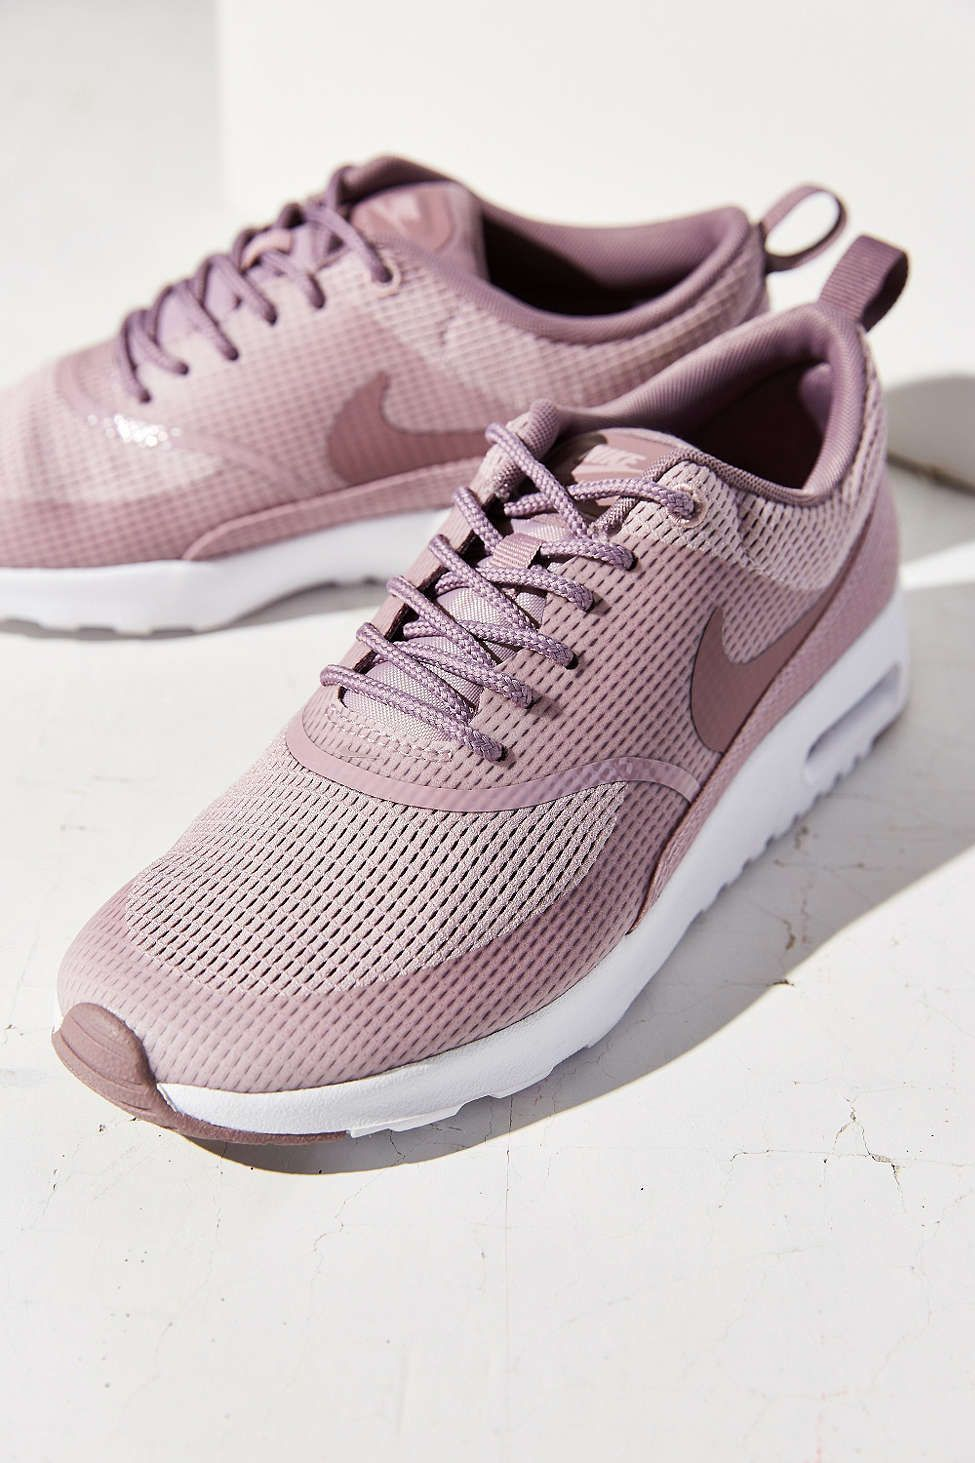 retail prices fast delivery size 40 www.fashiontrends... Nike Air Max Thea Textile Sneaker $95 | Nike ...